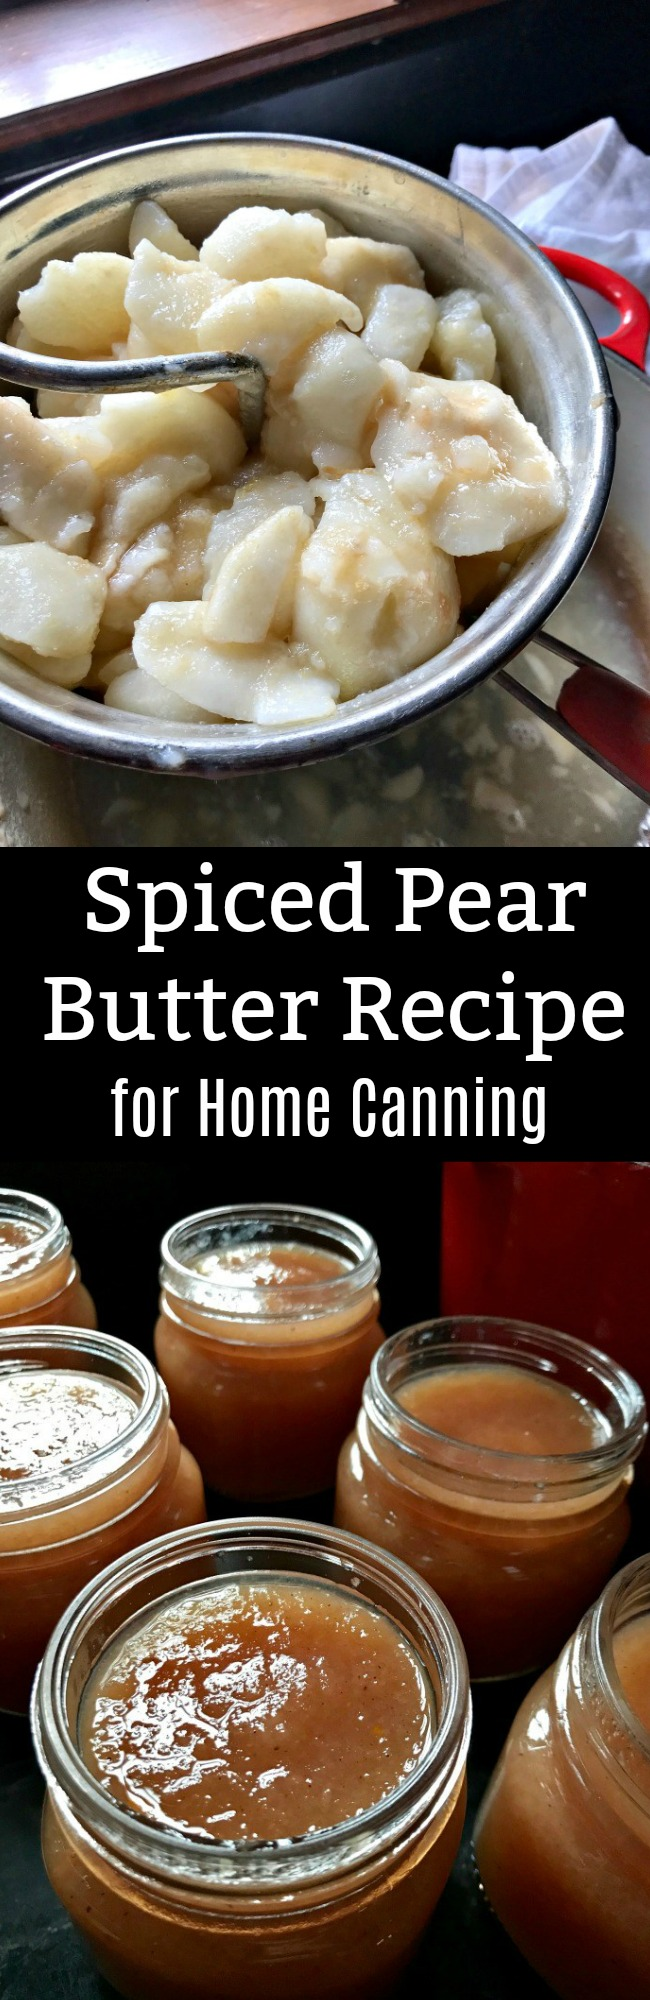 Spiced Pear Butter for Home Canning